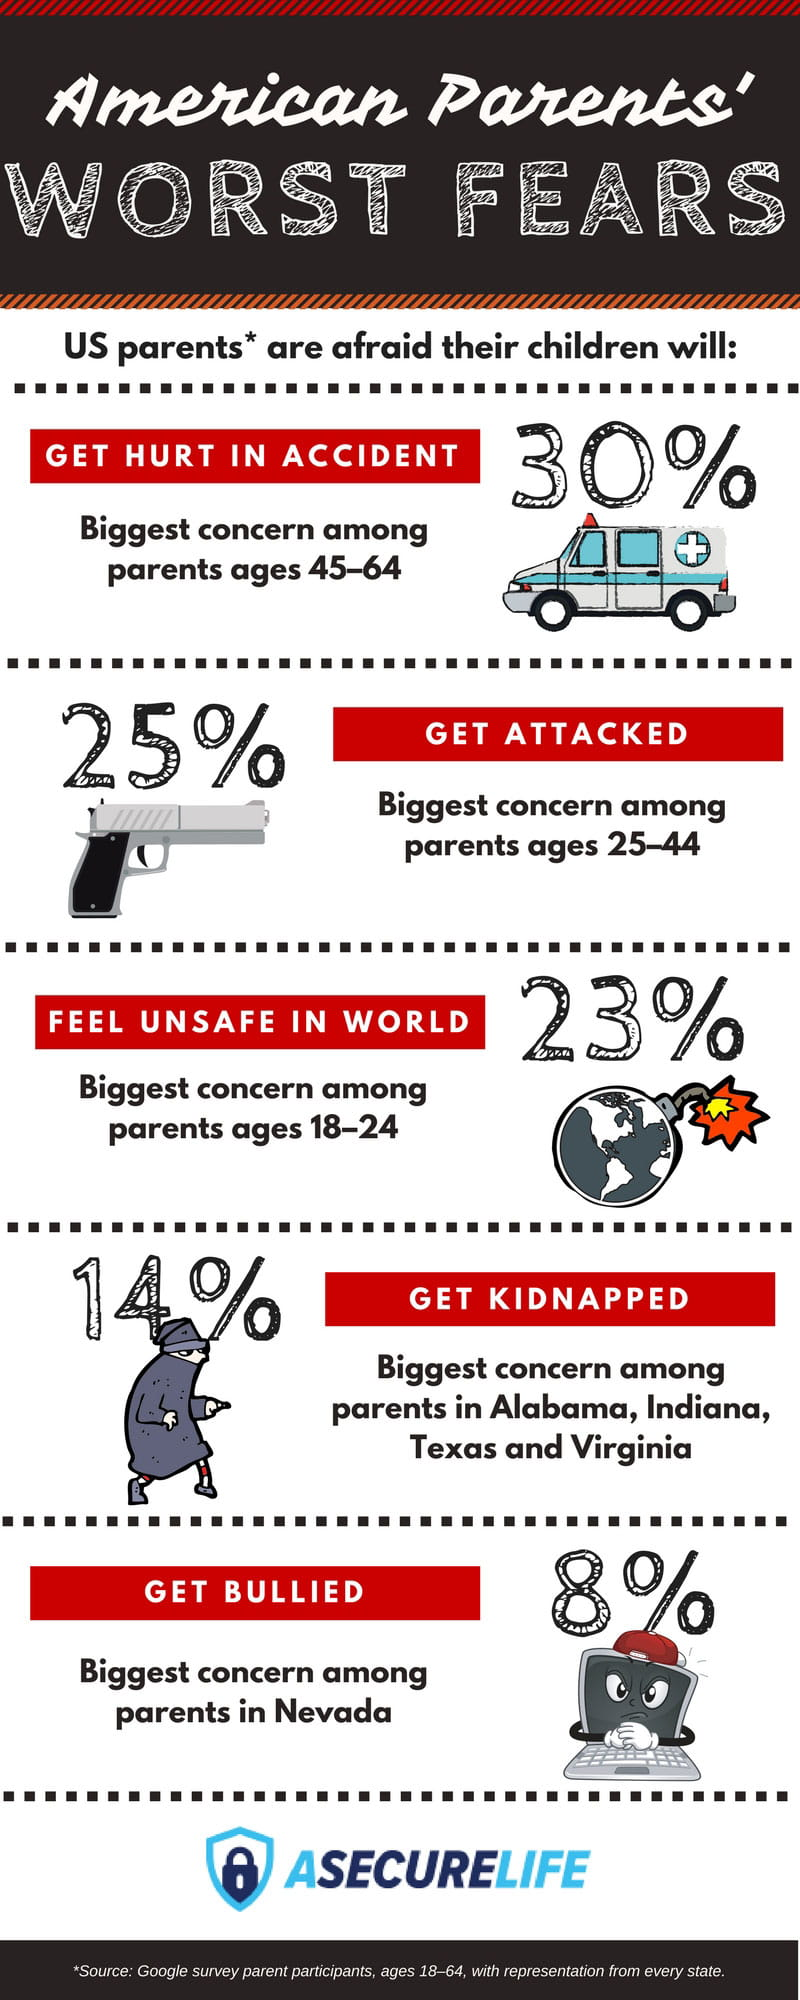 American Parents' Worst Fears Infographic